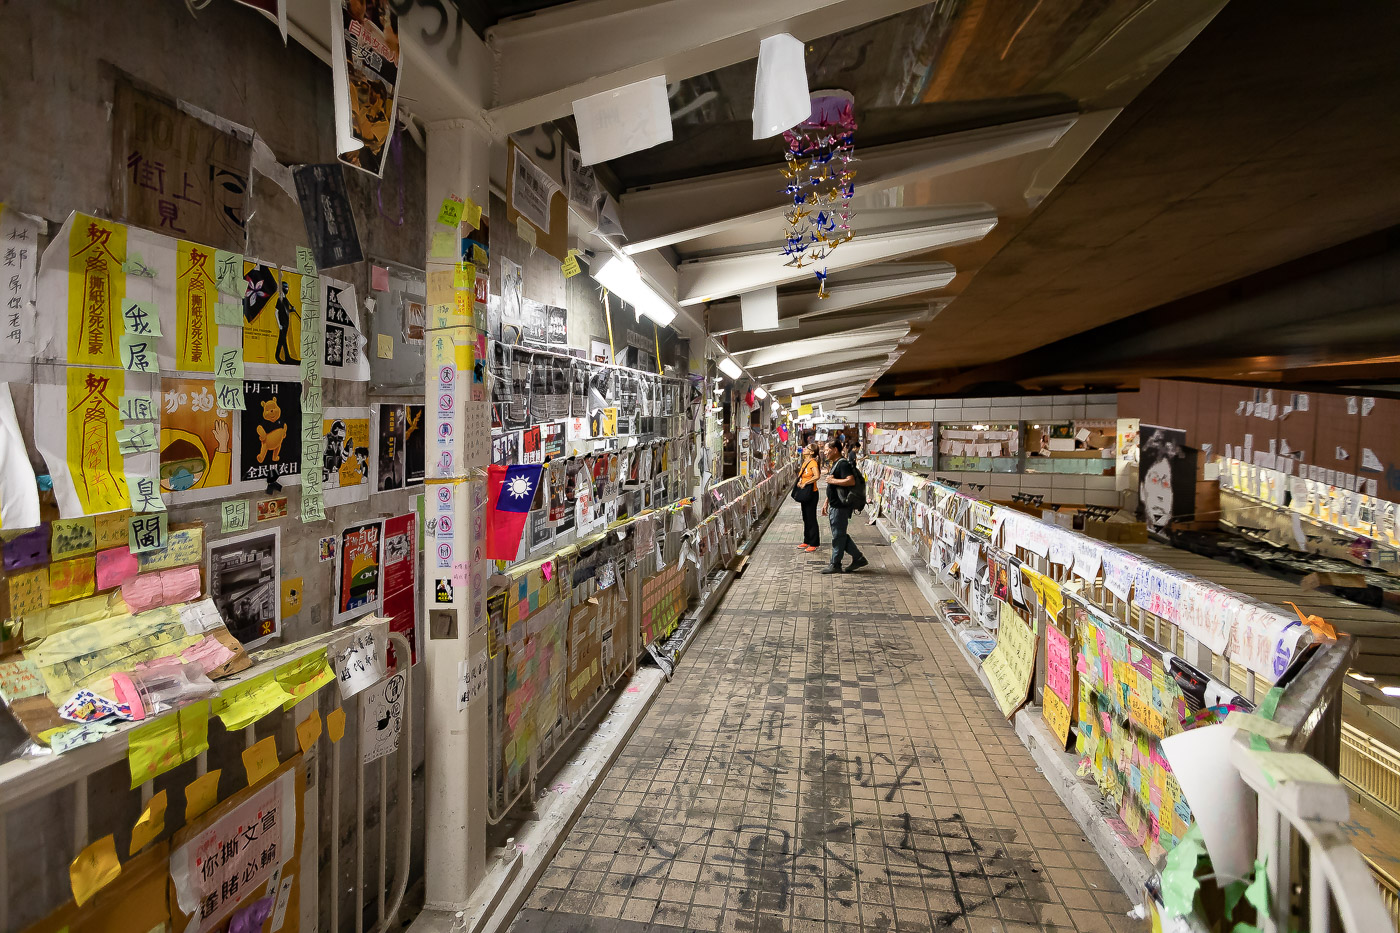 Two people stop to read posters and notes on a Lennon Wall at Tsing Yi pedestrian corridor, Hong Kong.